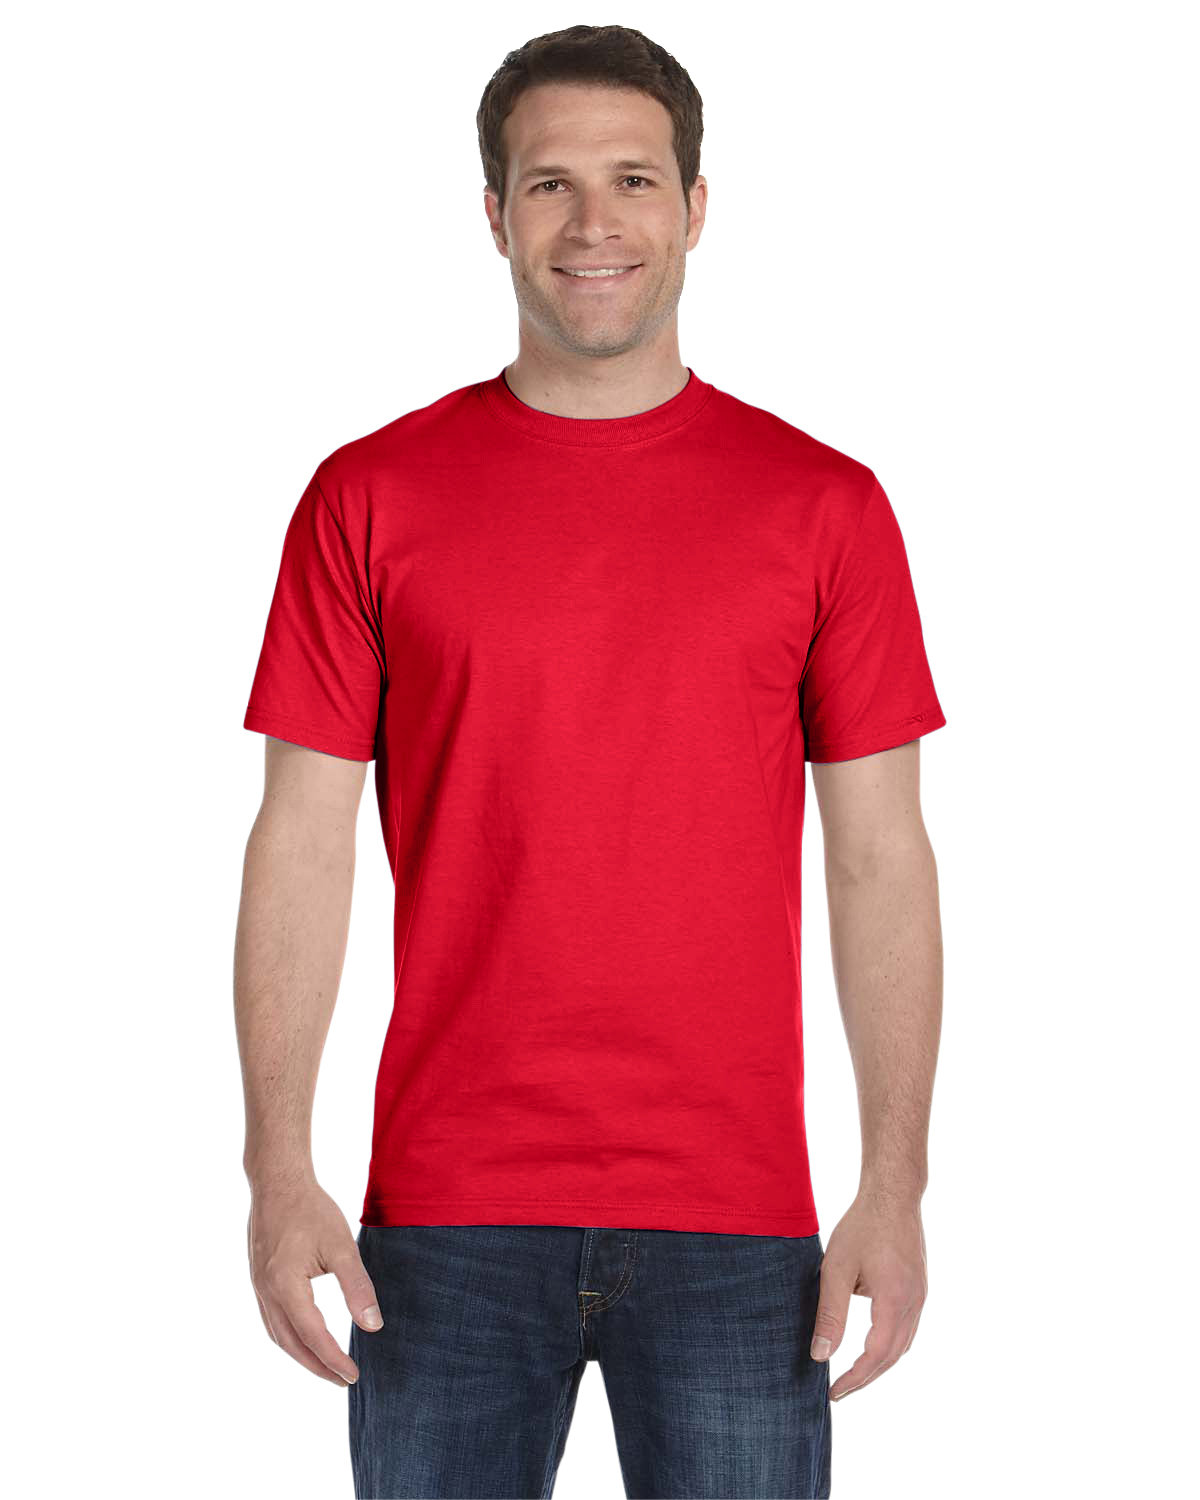 Hanes Unisex Comfortsoft® Cotton T-Shirt ATHLETIC RED